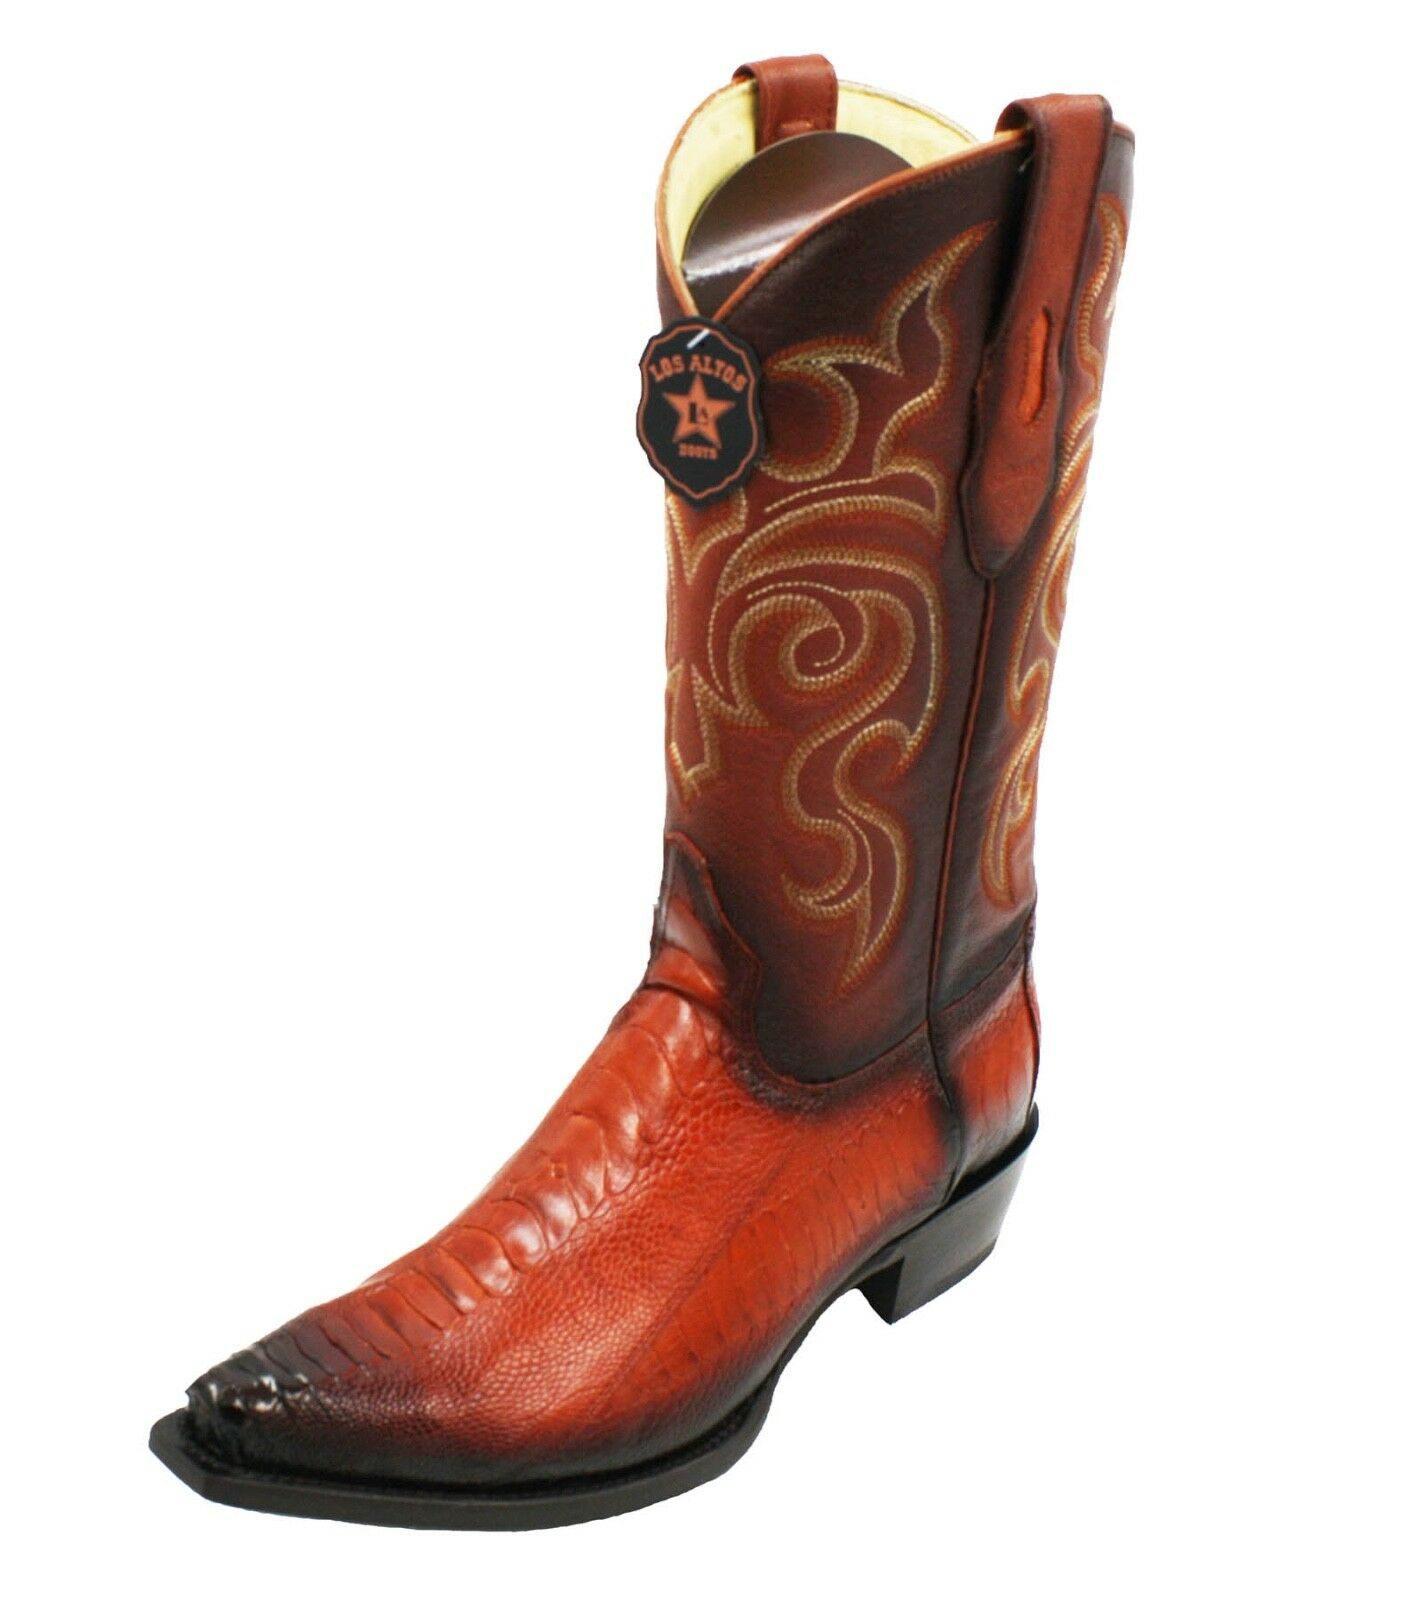 Men's Genuine Ostrich Leg skin Los Altos cowboy boots western exotic Snip Toe